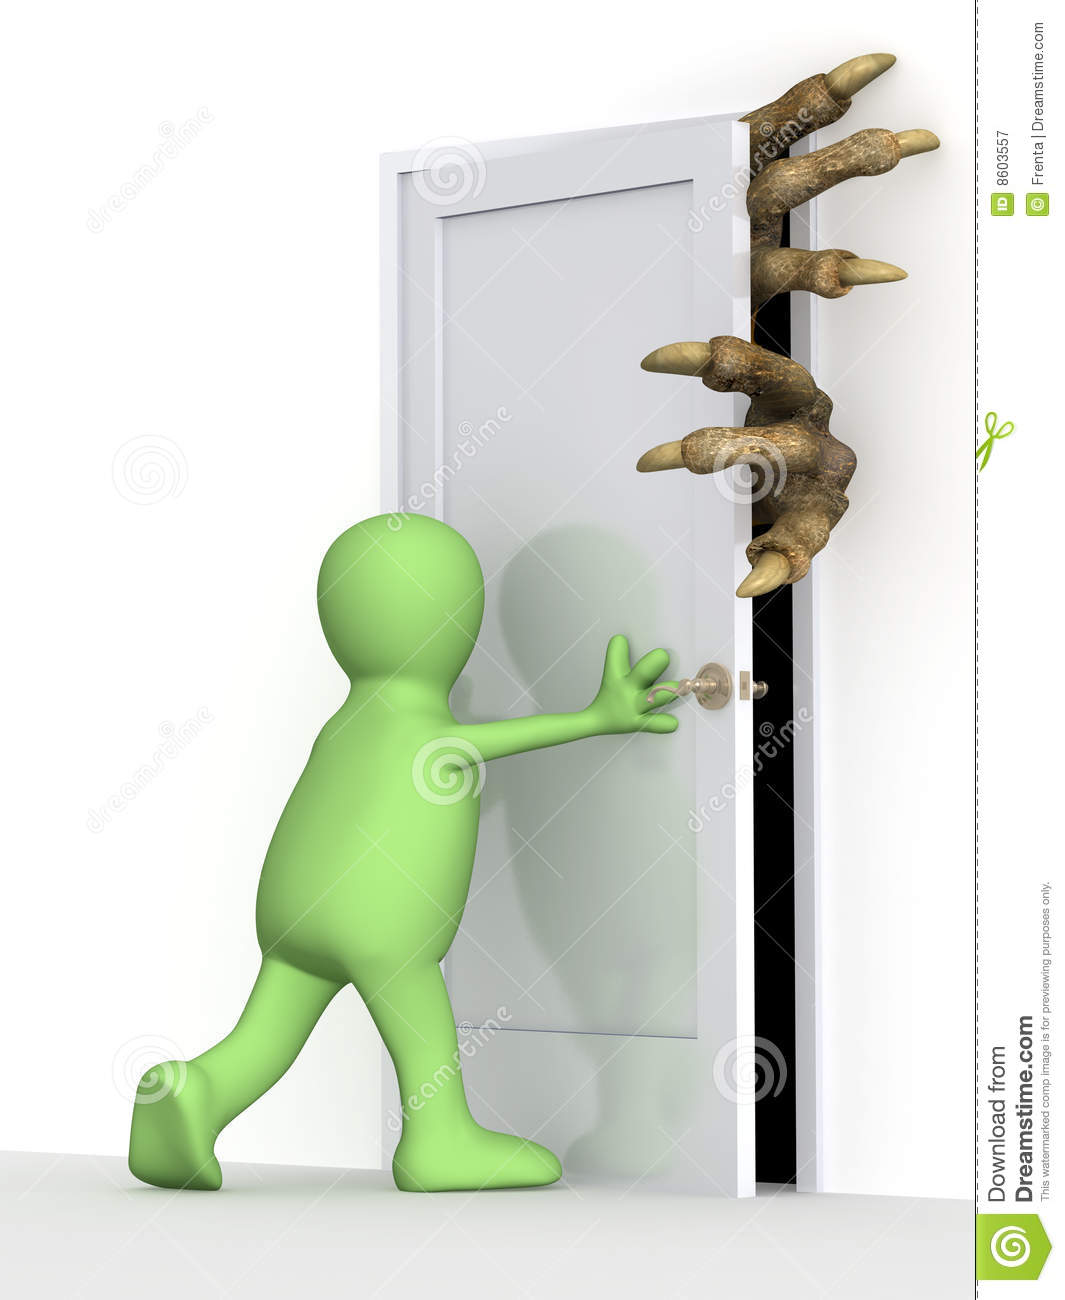 Le Meilleur Puppet Closing A Door Stock Illustration Illustration Of Ce Mois Ci